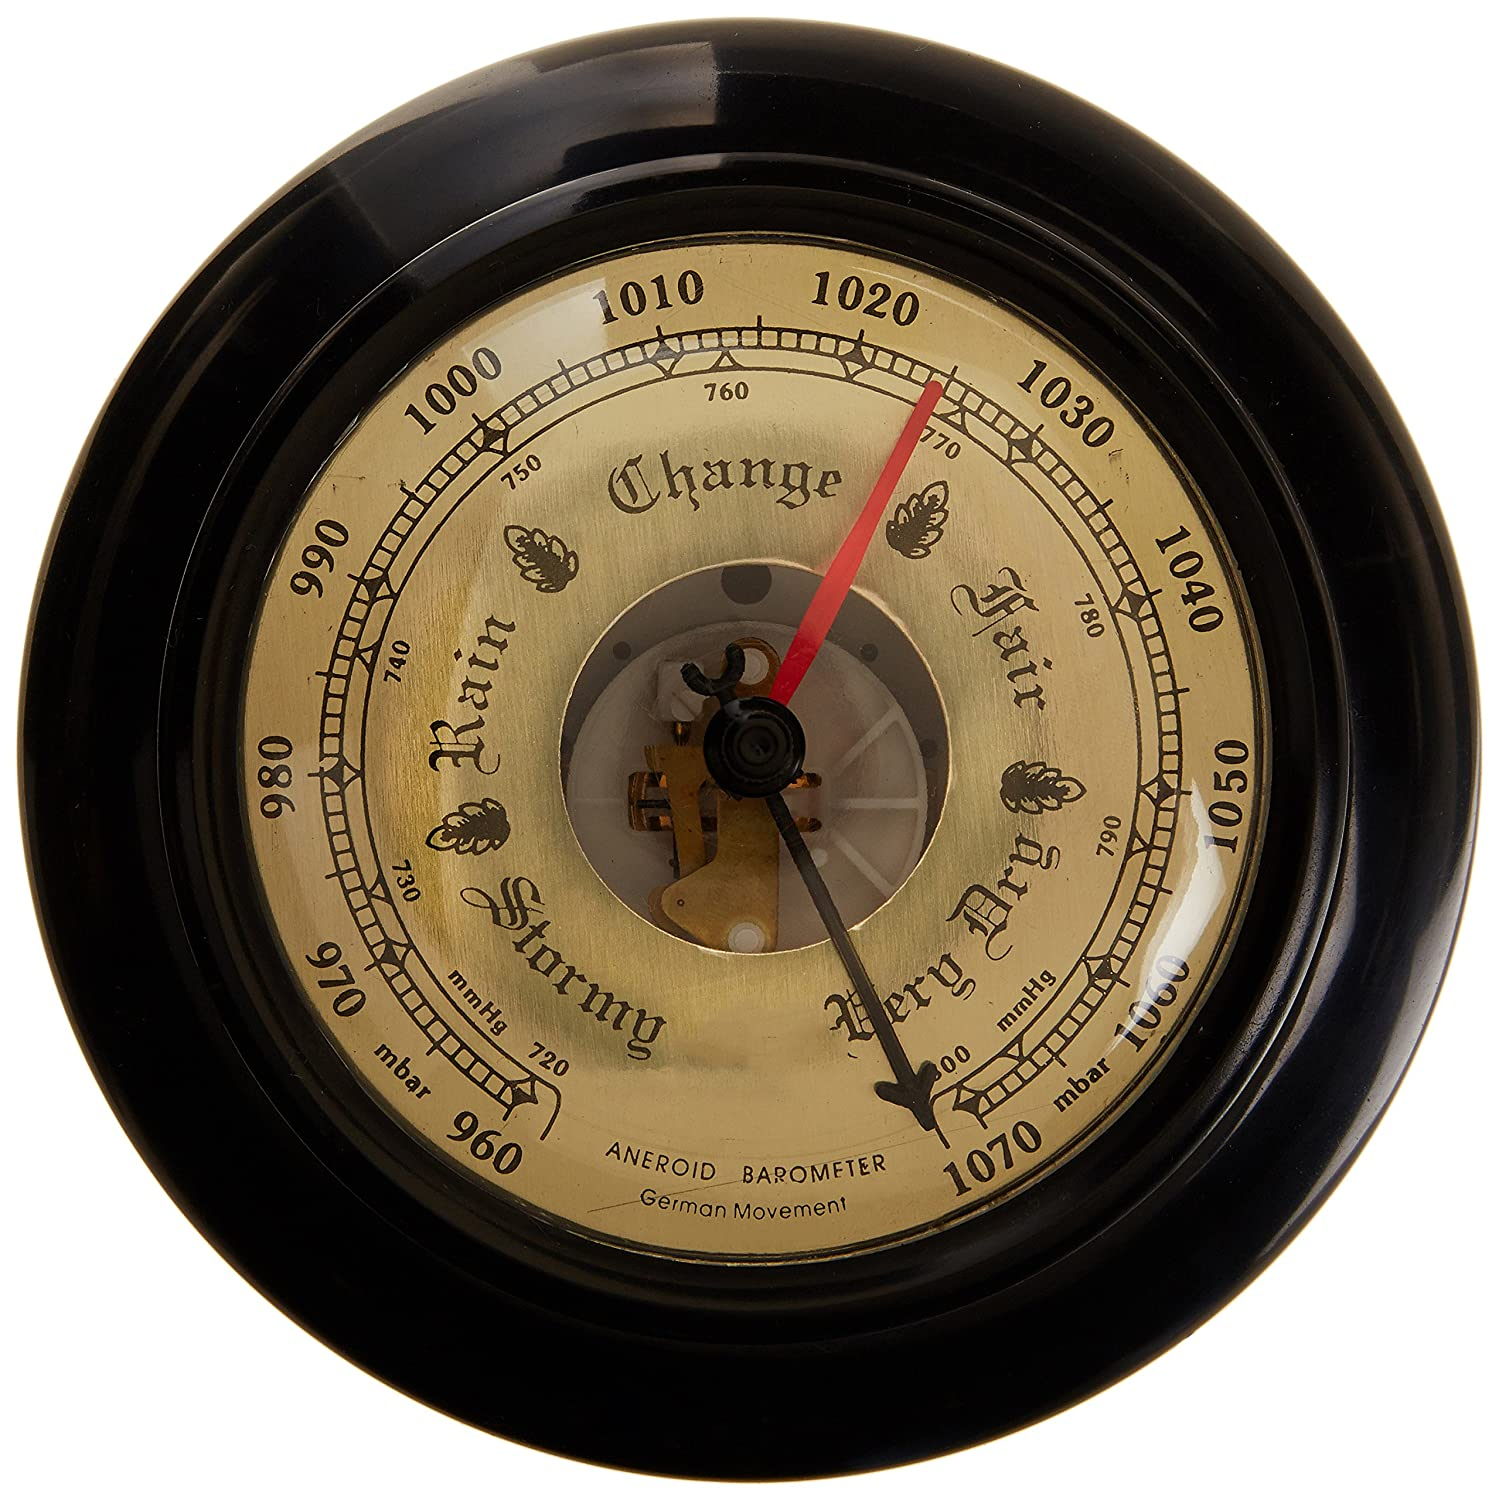 United Scientific ANBR01 Aneroid Barometer, 7.5' Overall Diameter 7.5 Overall Diameter Thomas Scientific